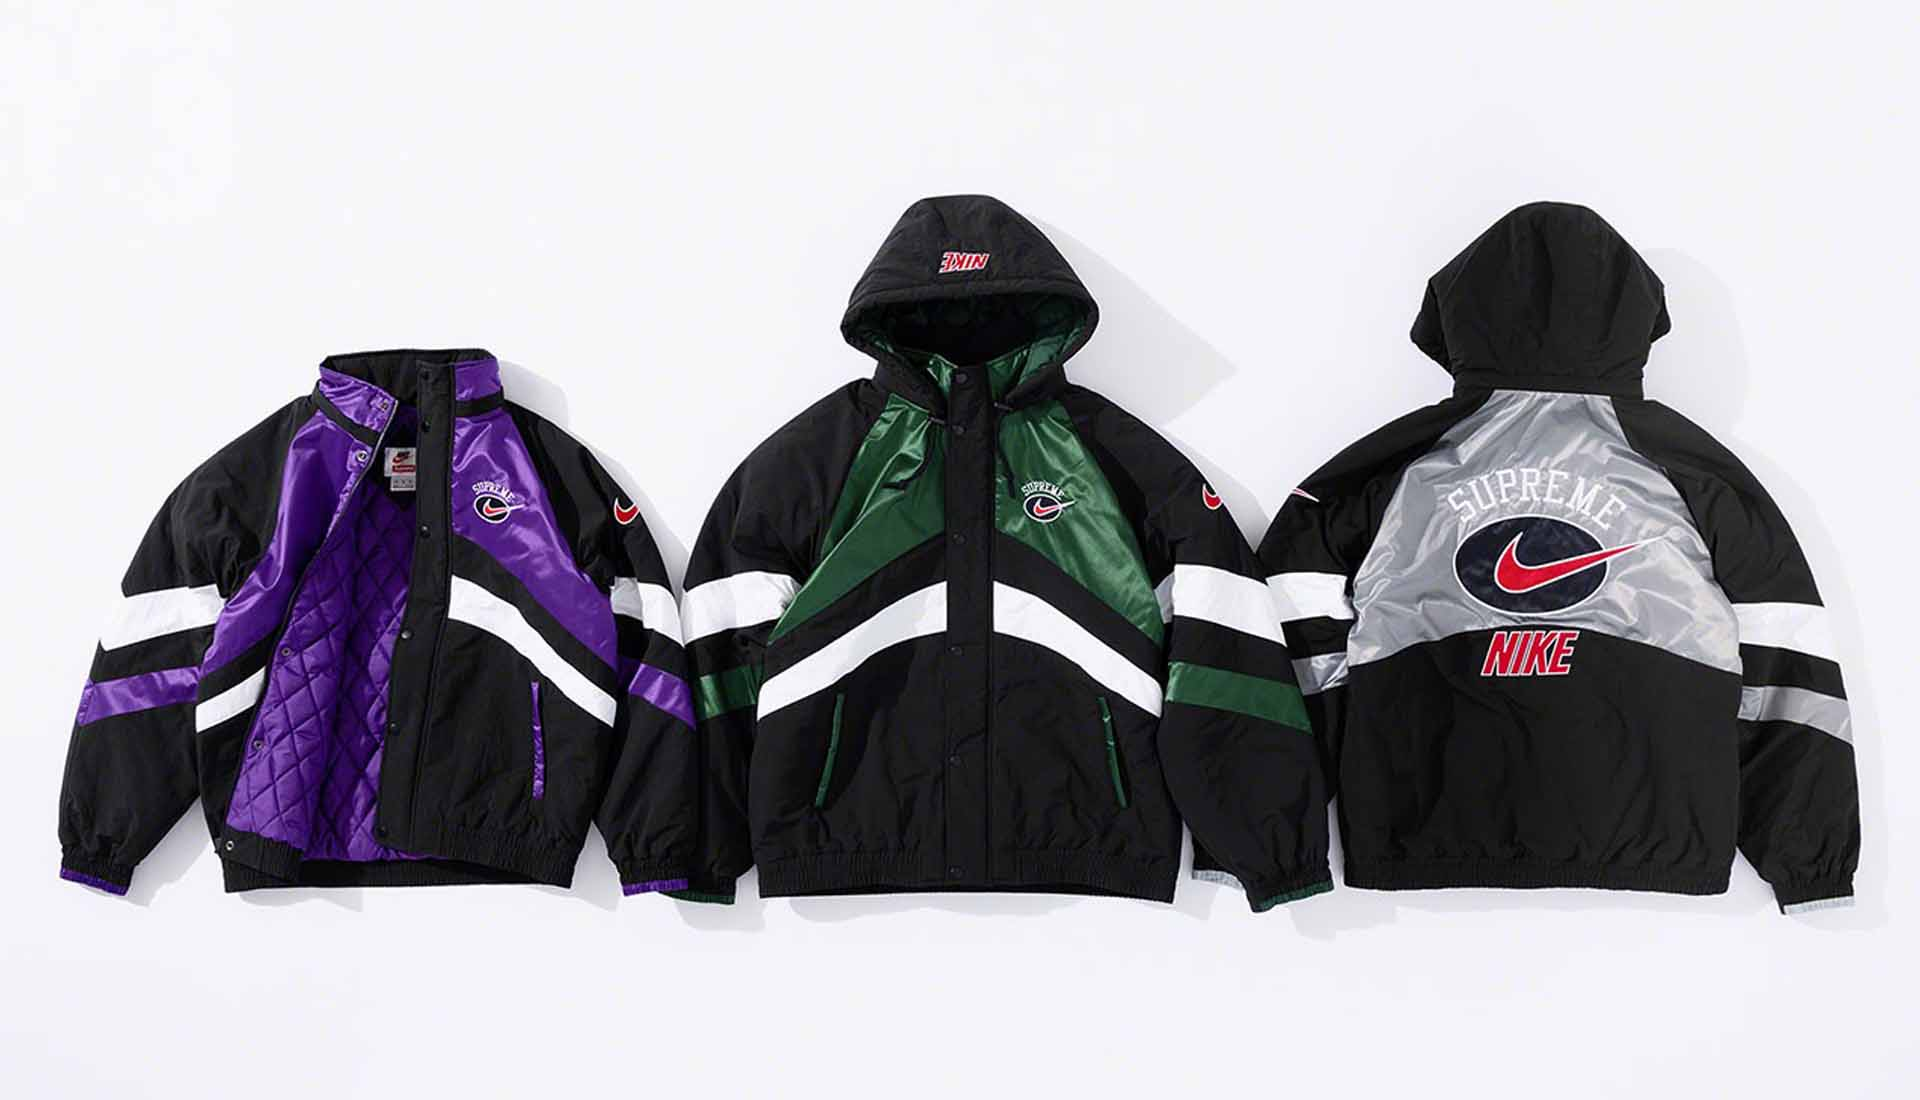 Supreme x Nike Launch Summer 2019 Collection - SoccerBible